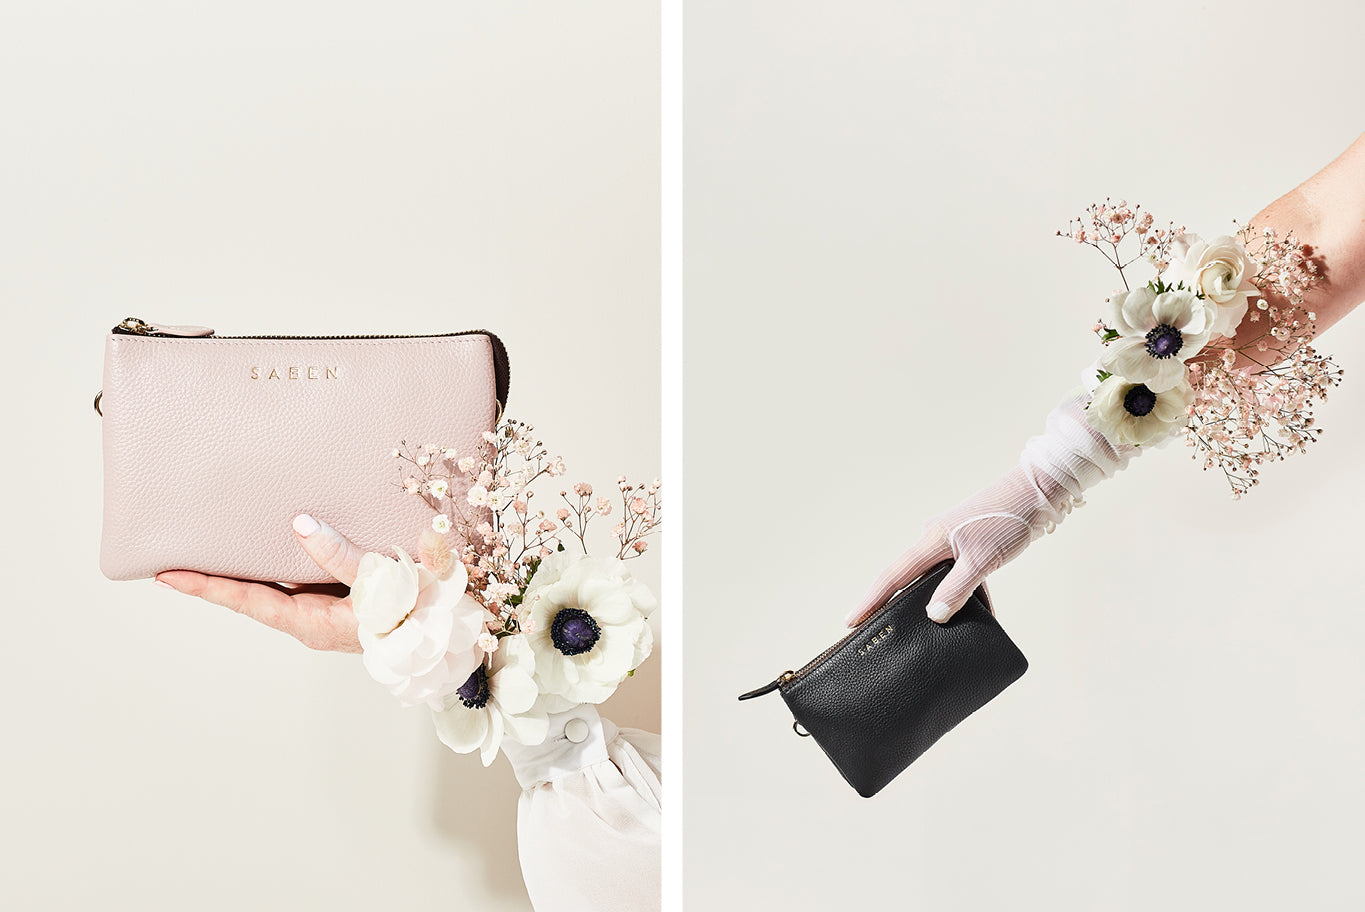 Saben Launch Bridal Collection of Ballerina pale pink leather clutch purse handbag